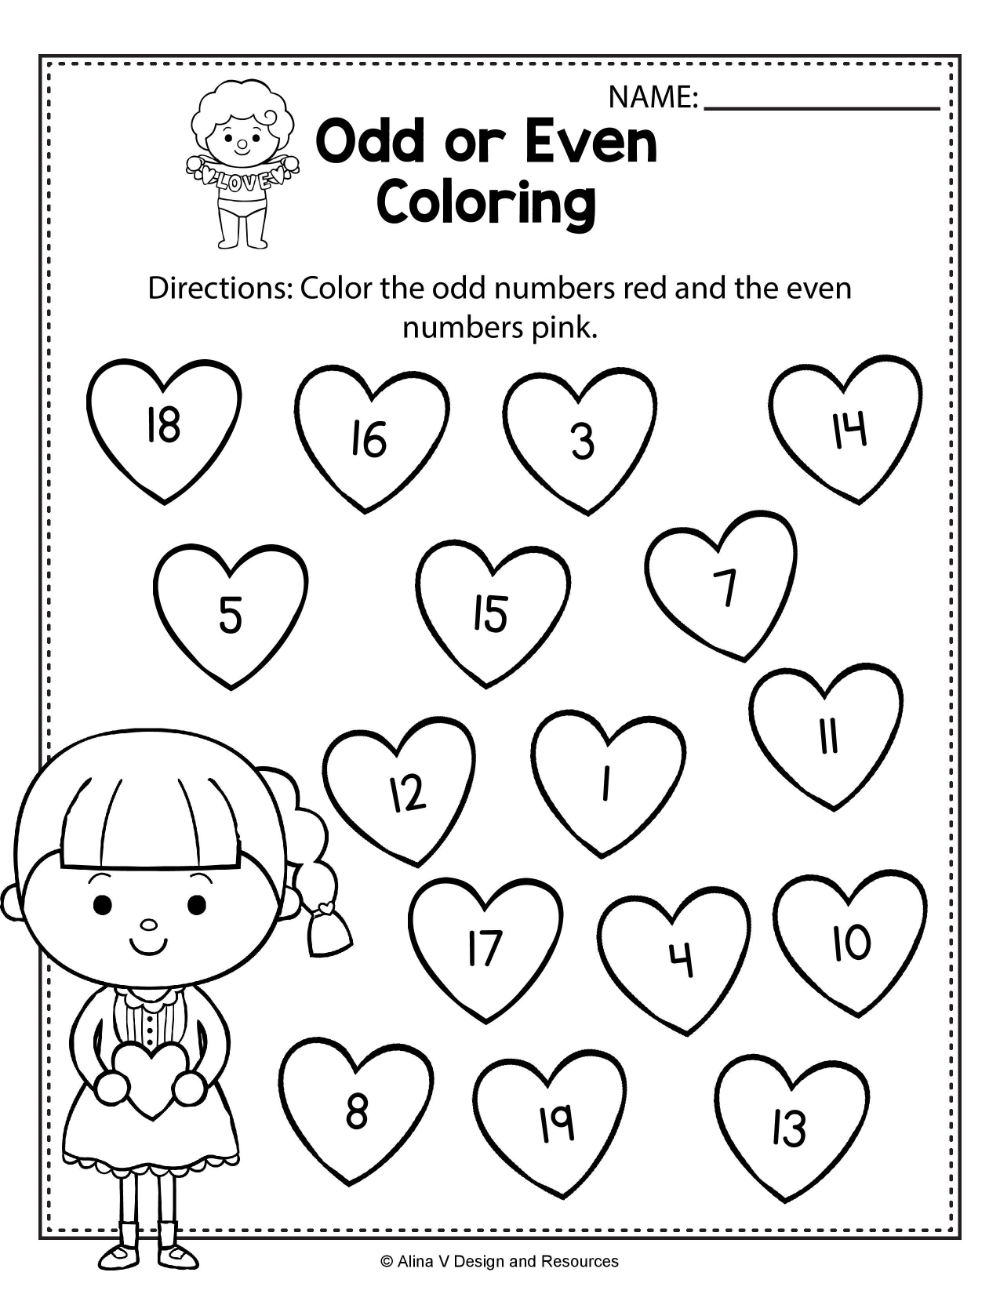 Even Odd Worksheets Printable 101 Activity Kindergarten Math Worksheets Free Free Kindergarten Worksheets Kindergarten Math Worksheets